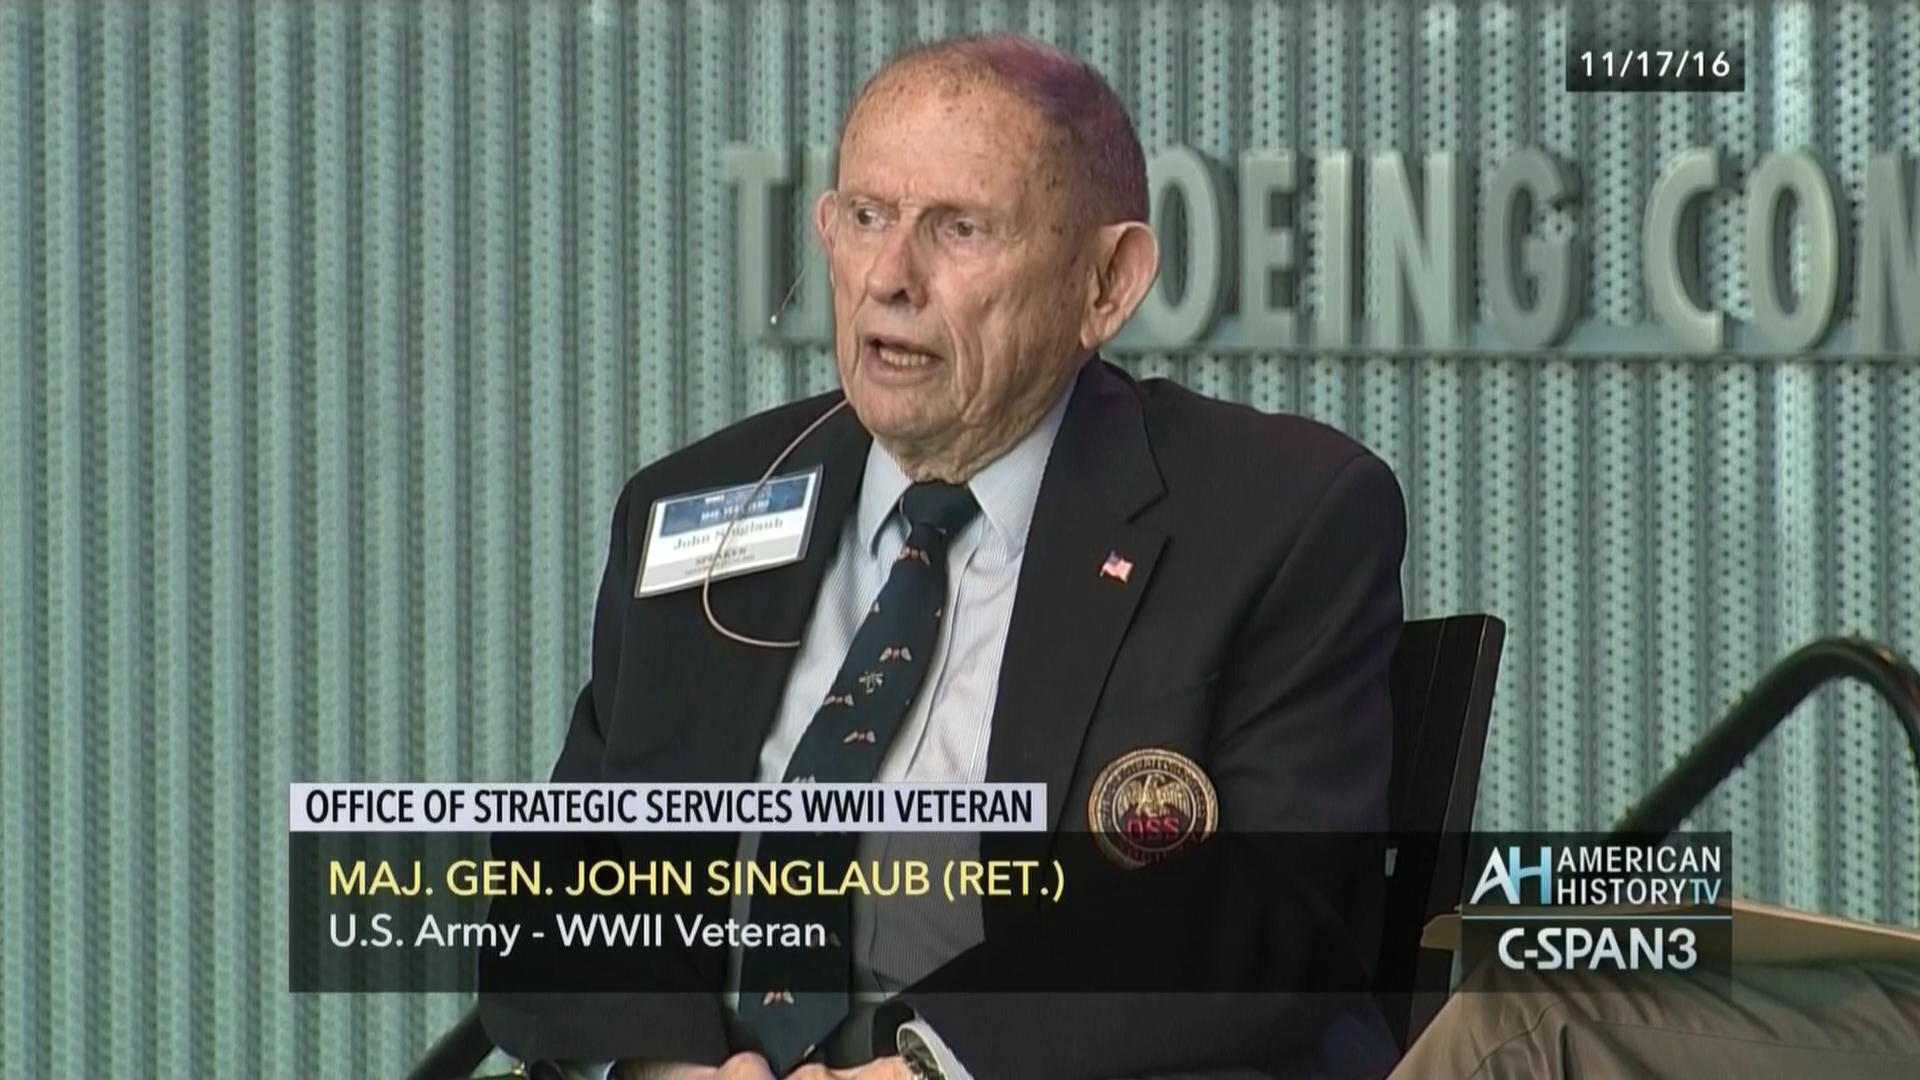 Office Of Strategic Services World War Ii Veteran